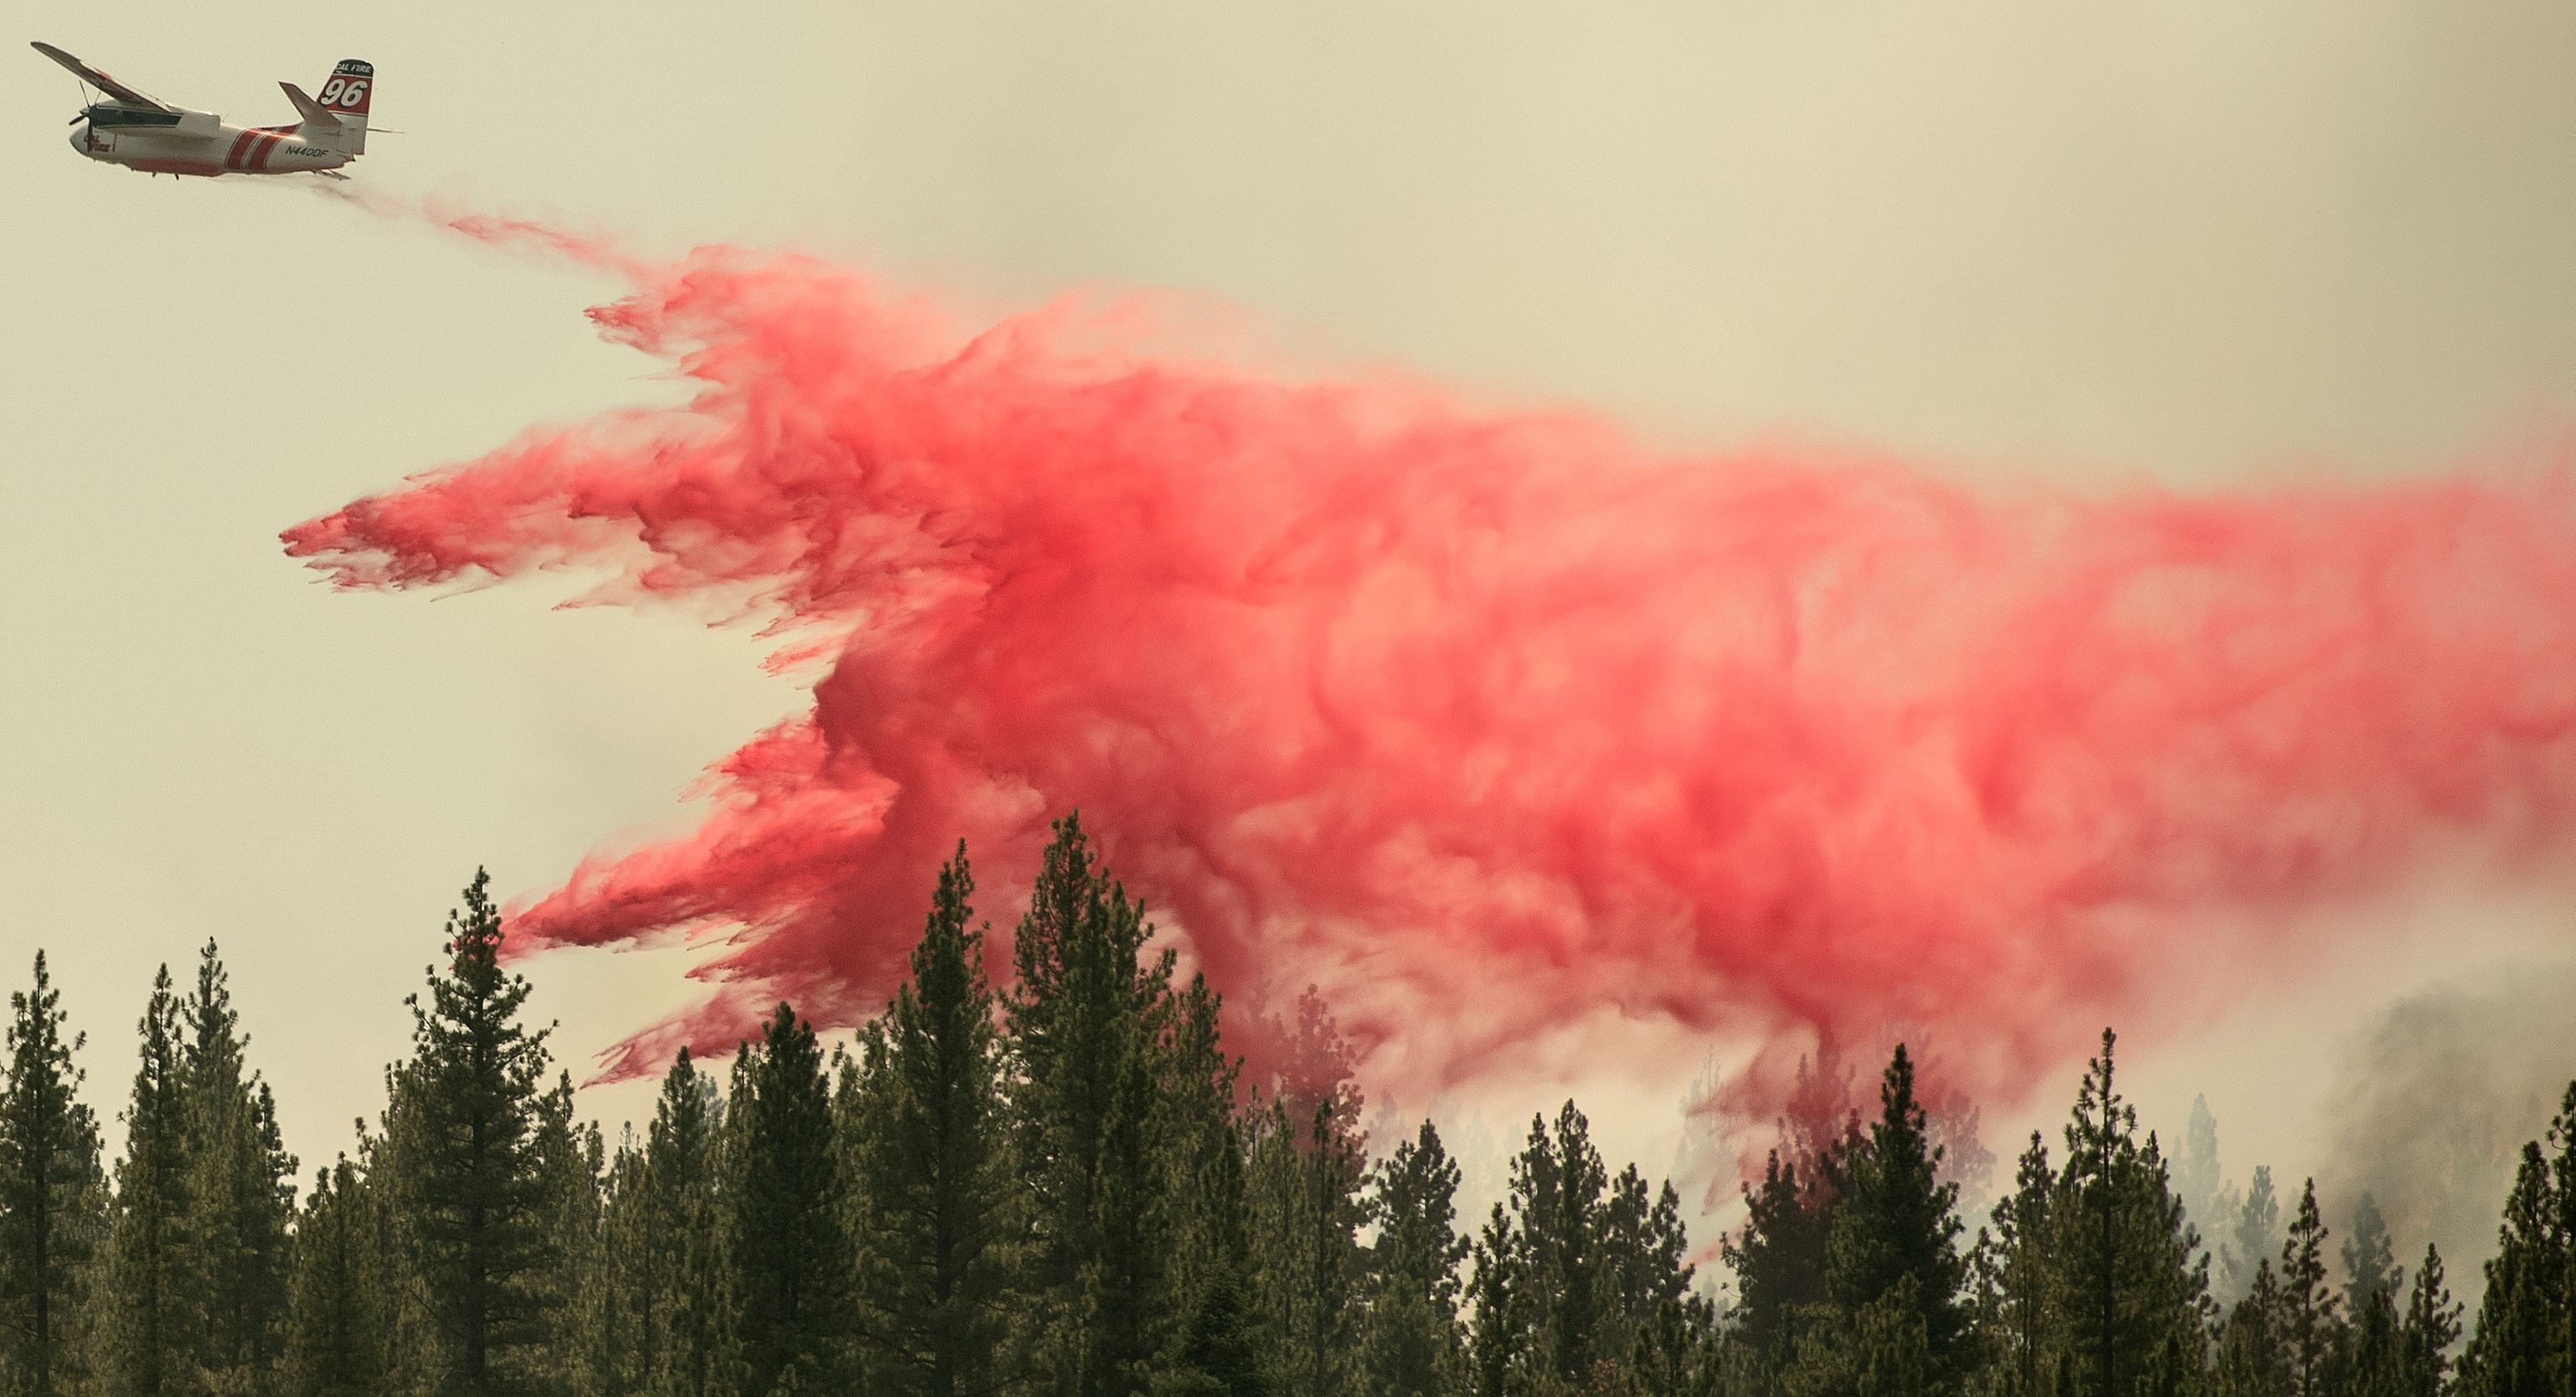 A Cal Fire aircraft drops fire retardant over the Hog Fire, near Susanville, California, on July 21.